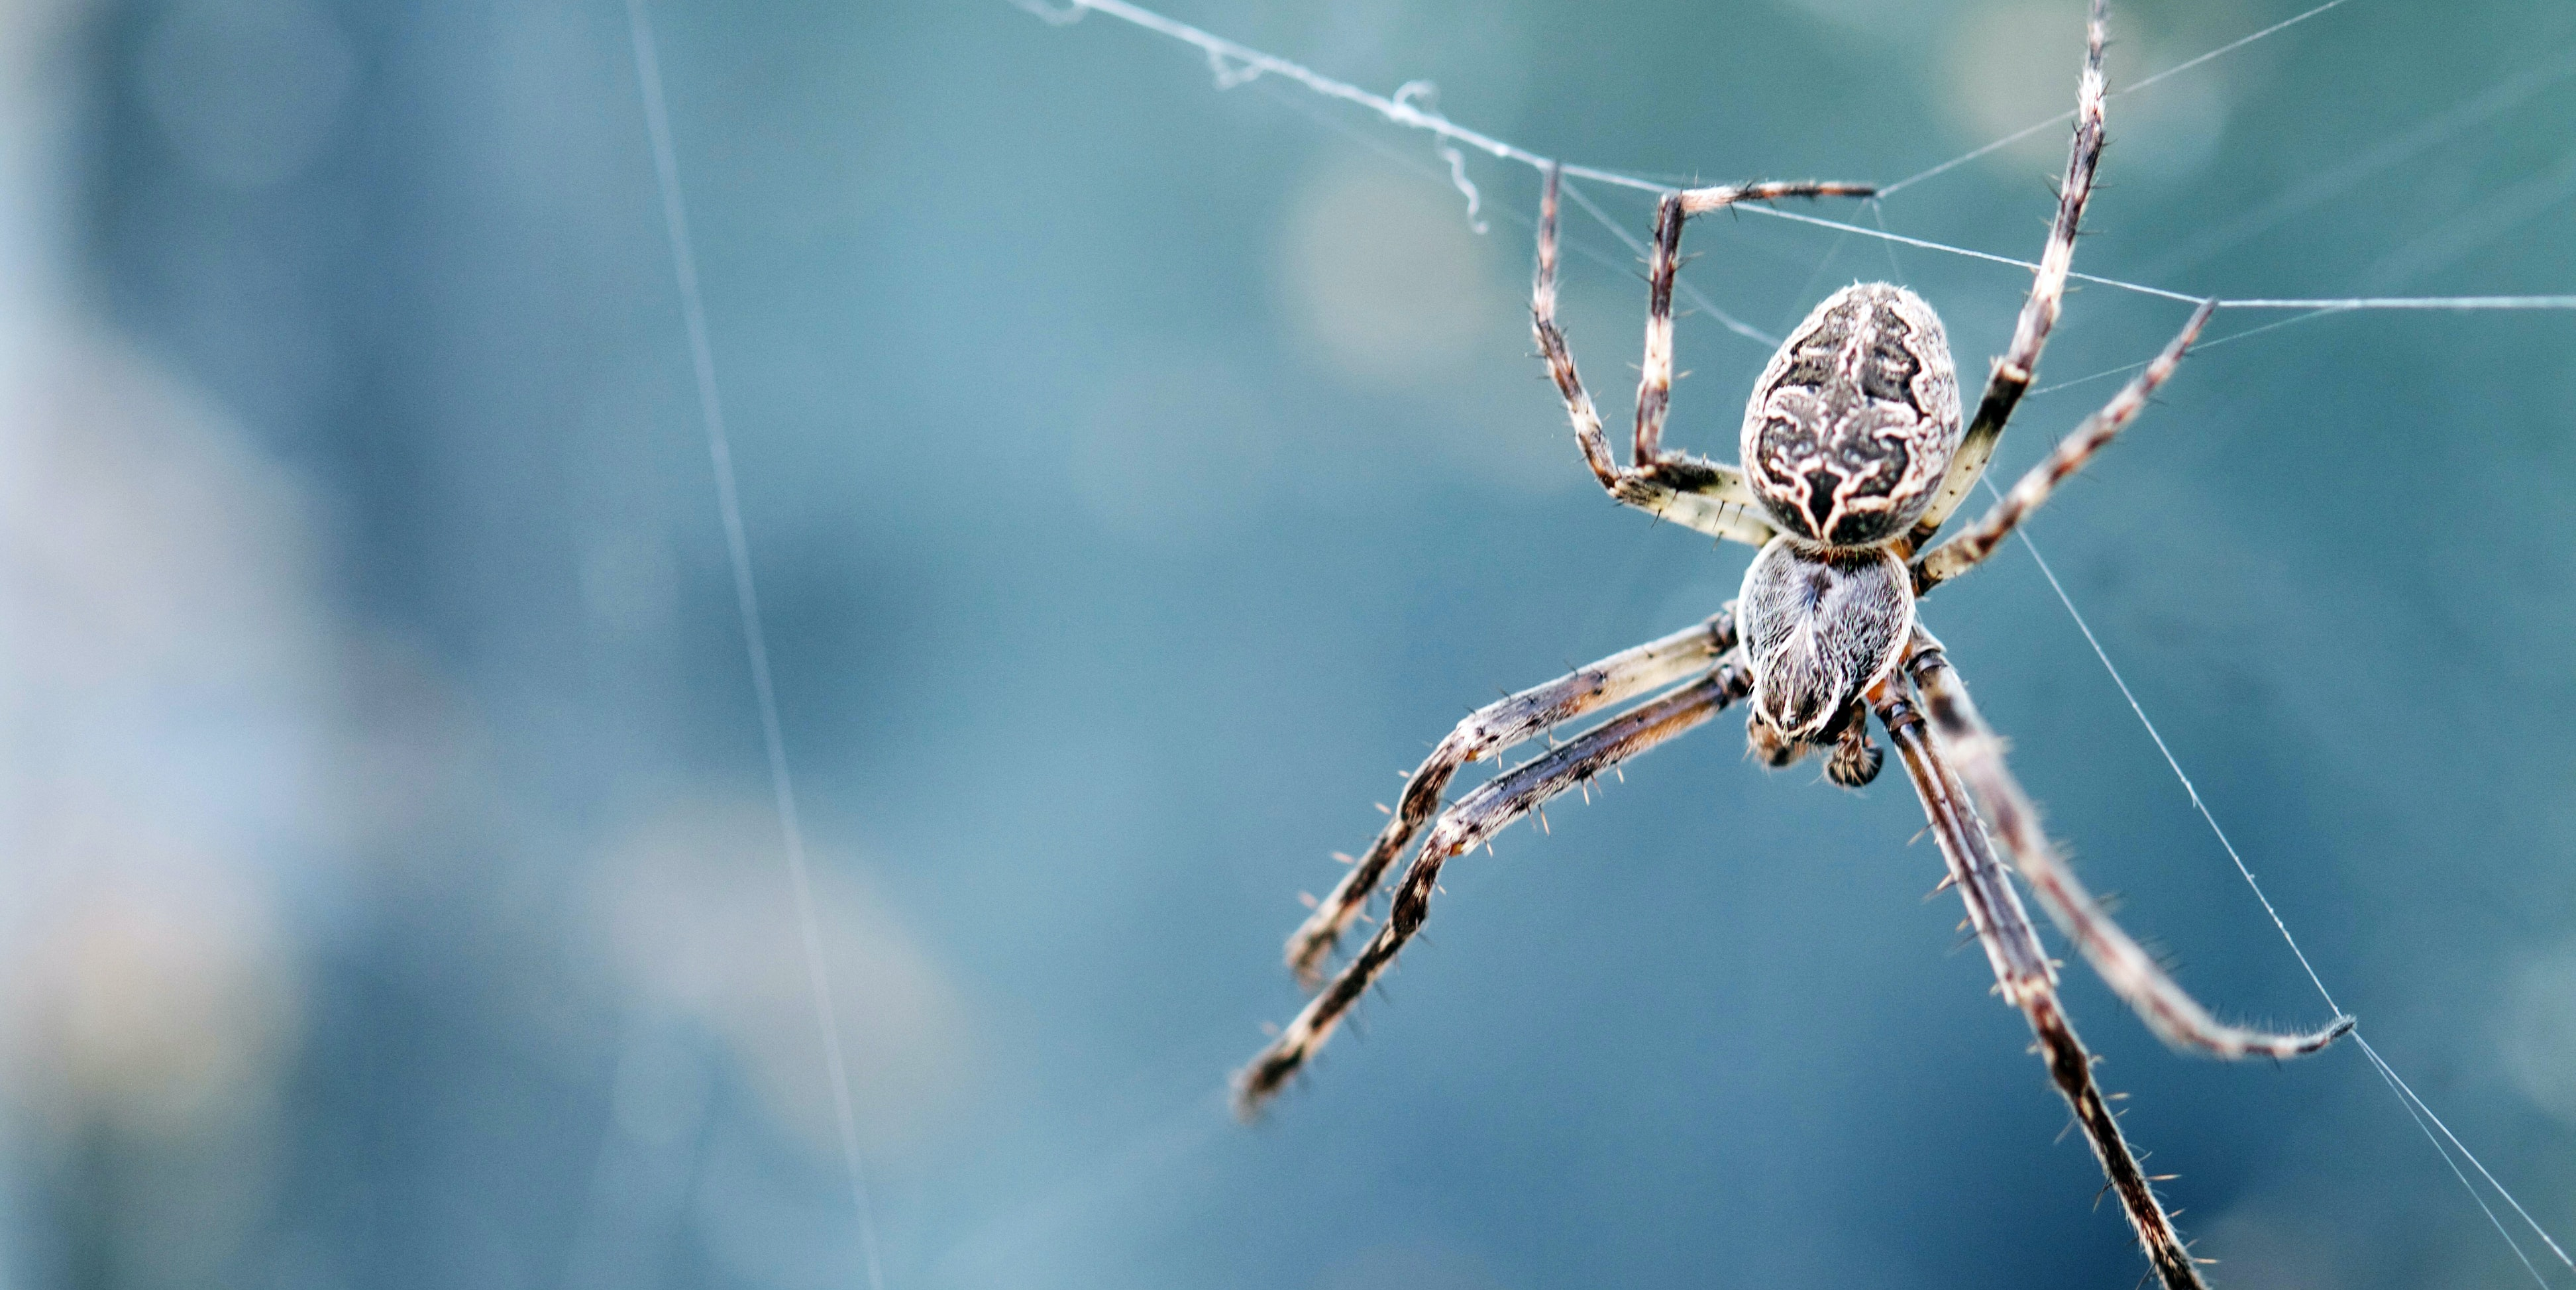 Spiders Can Fly and They Don't Even Need Wings, Study Claims